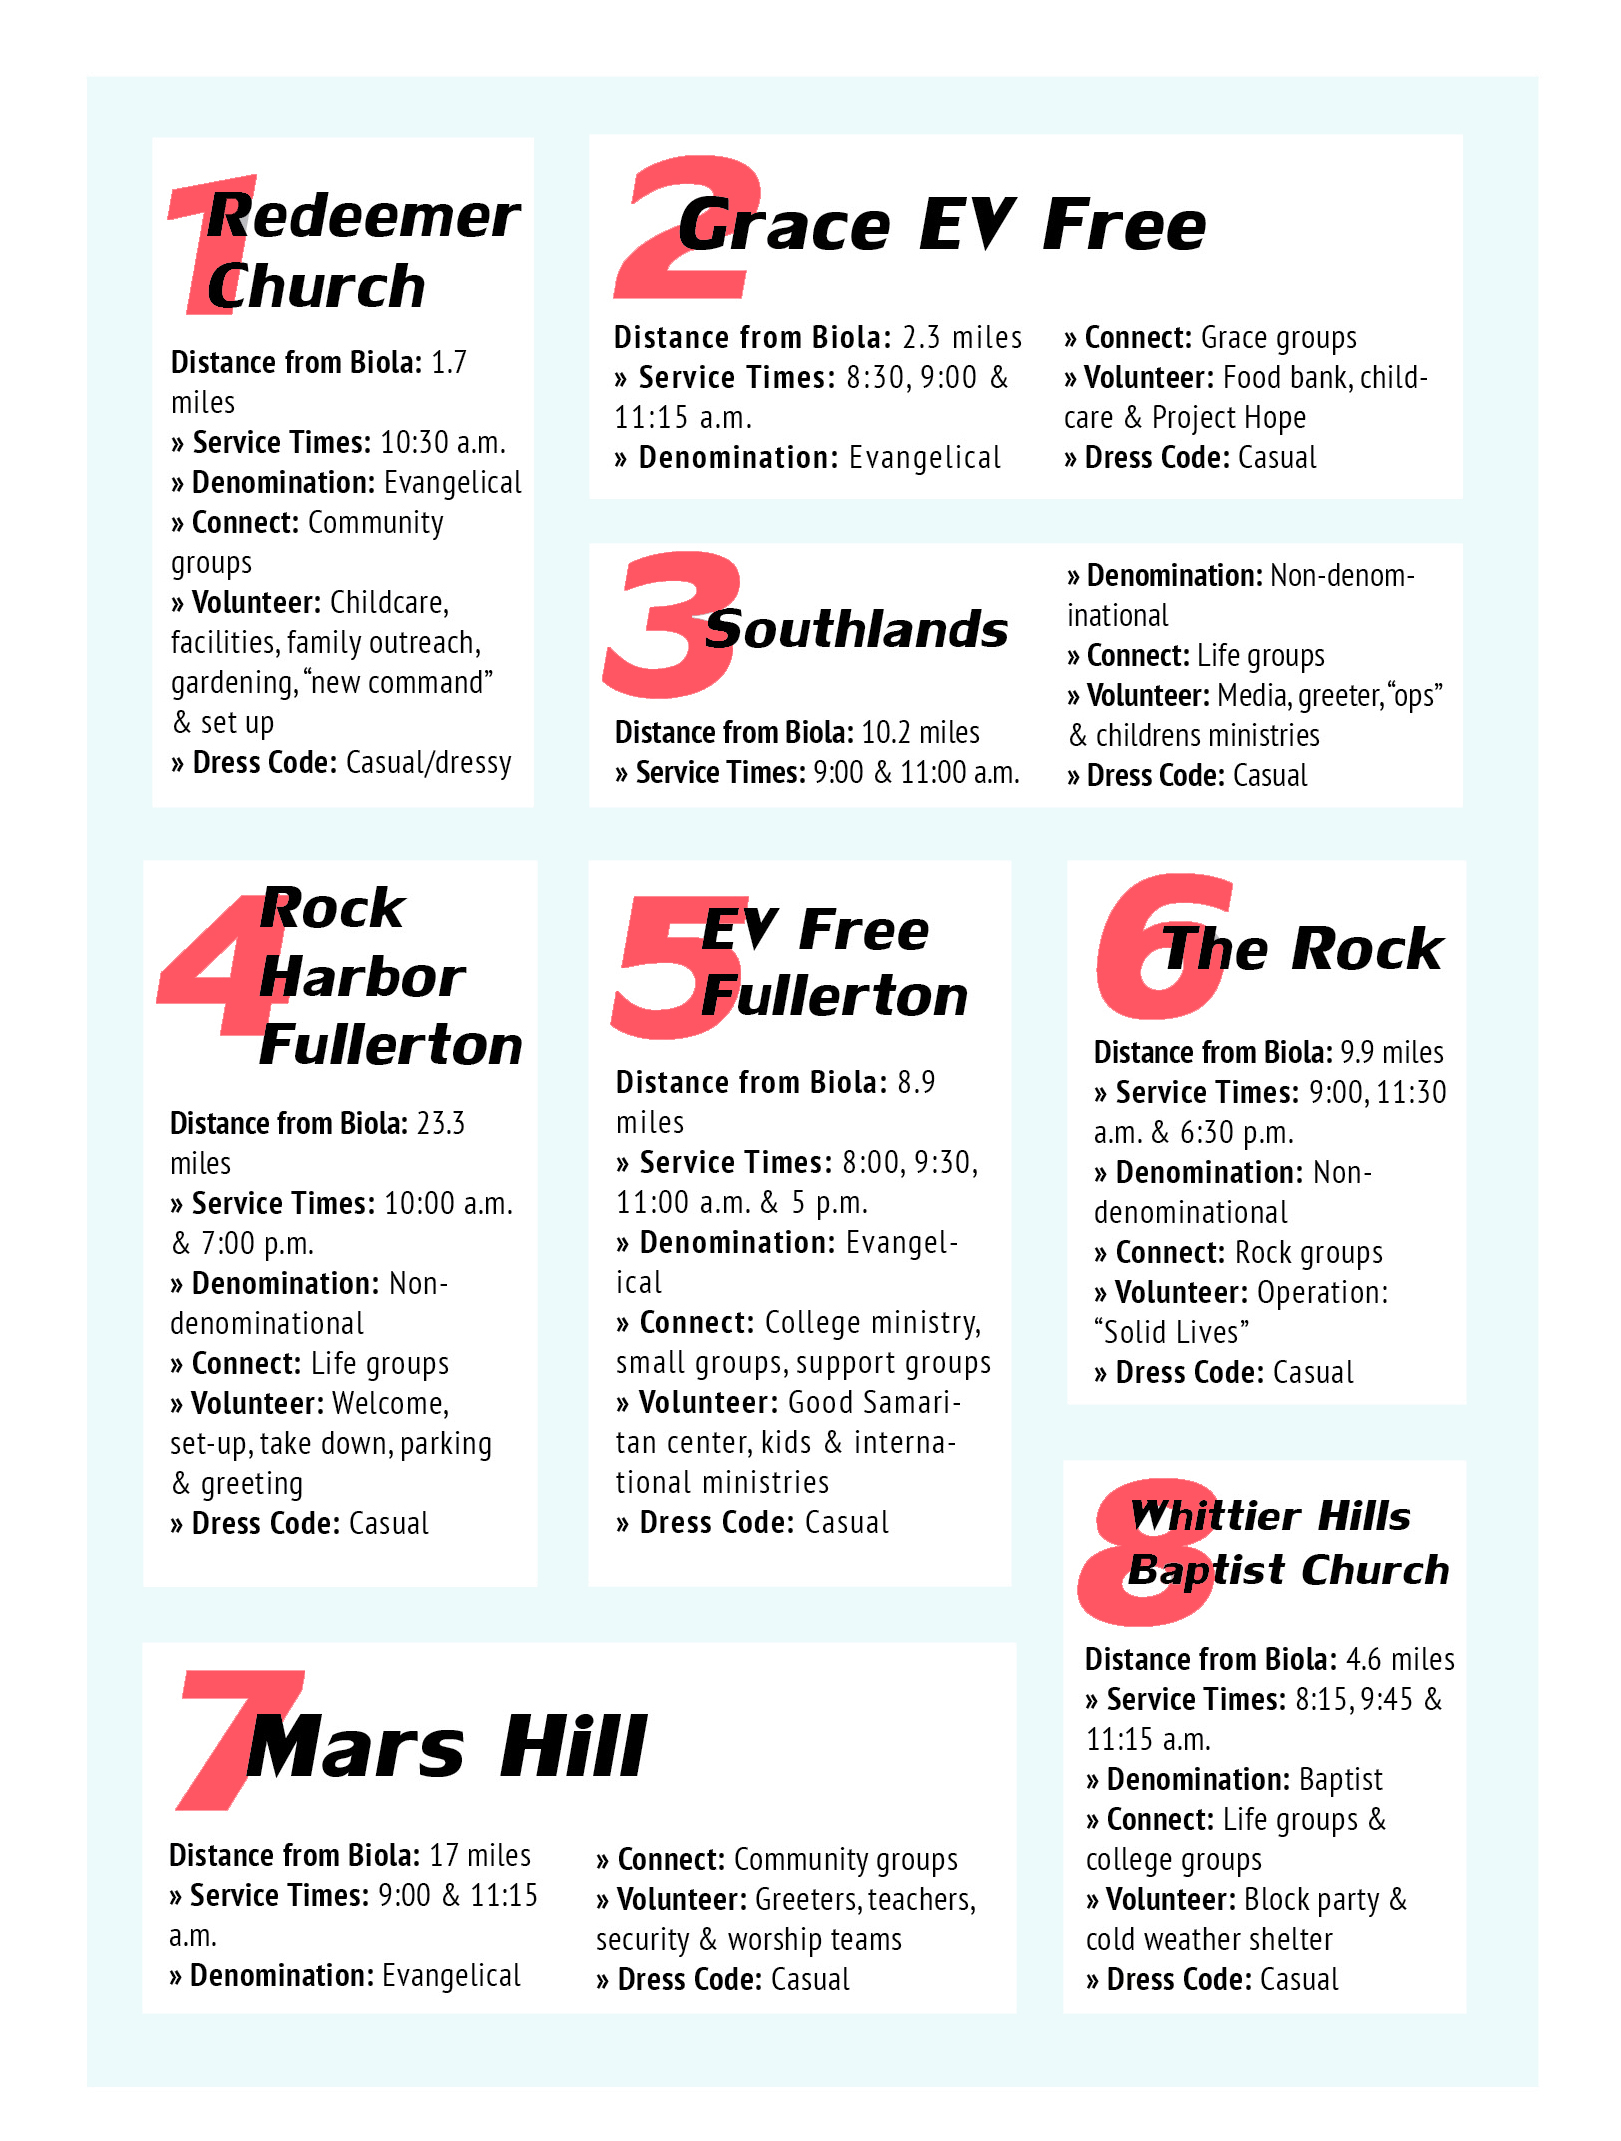 Search for your church: A quick overview of local churches